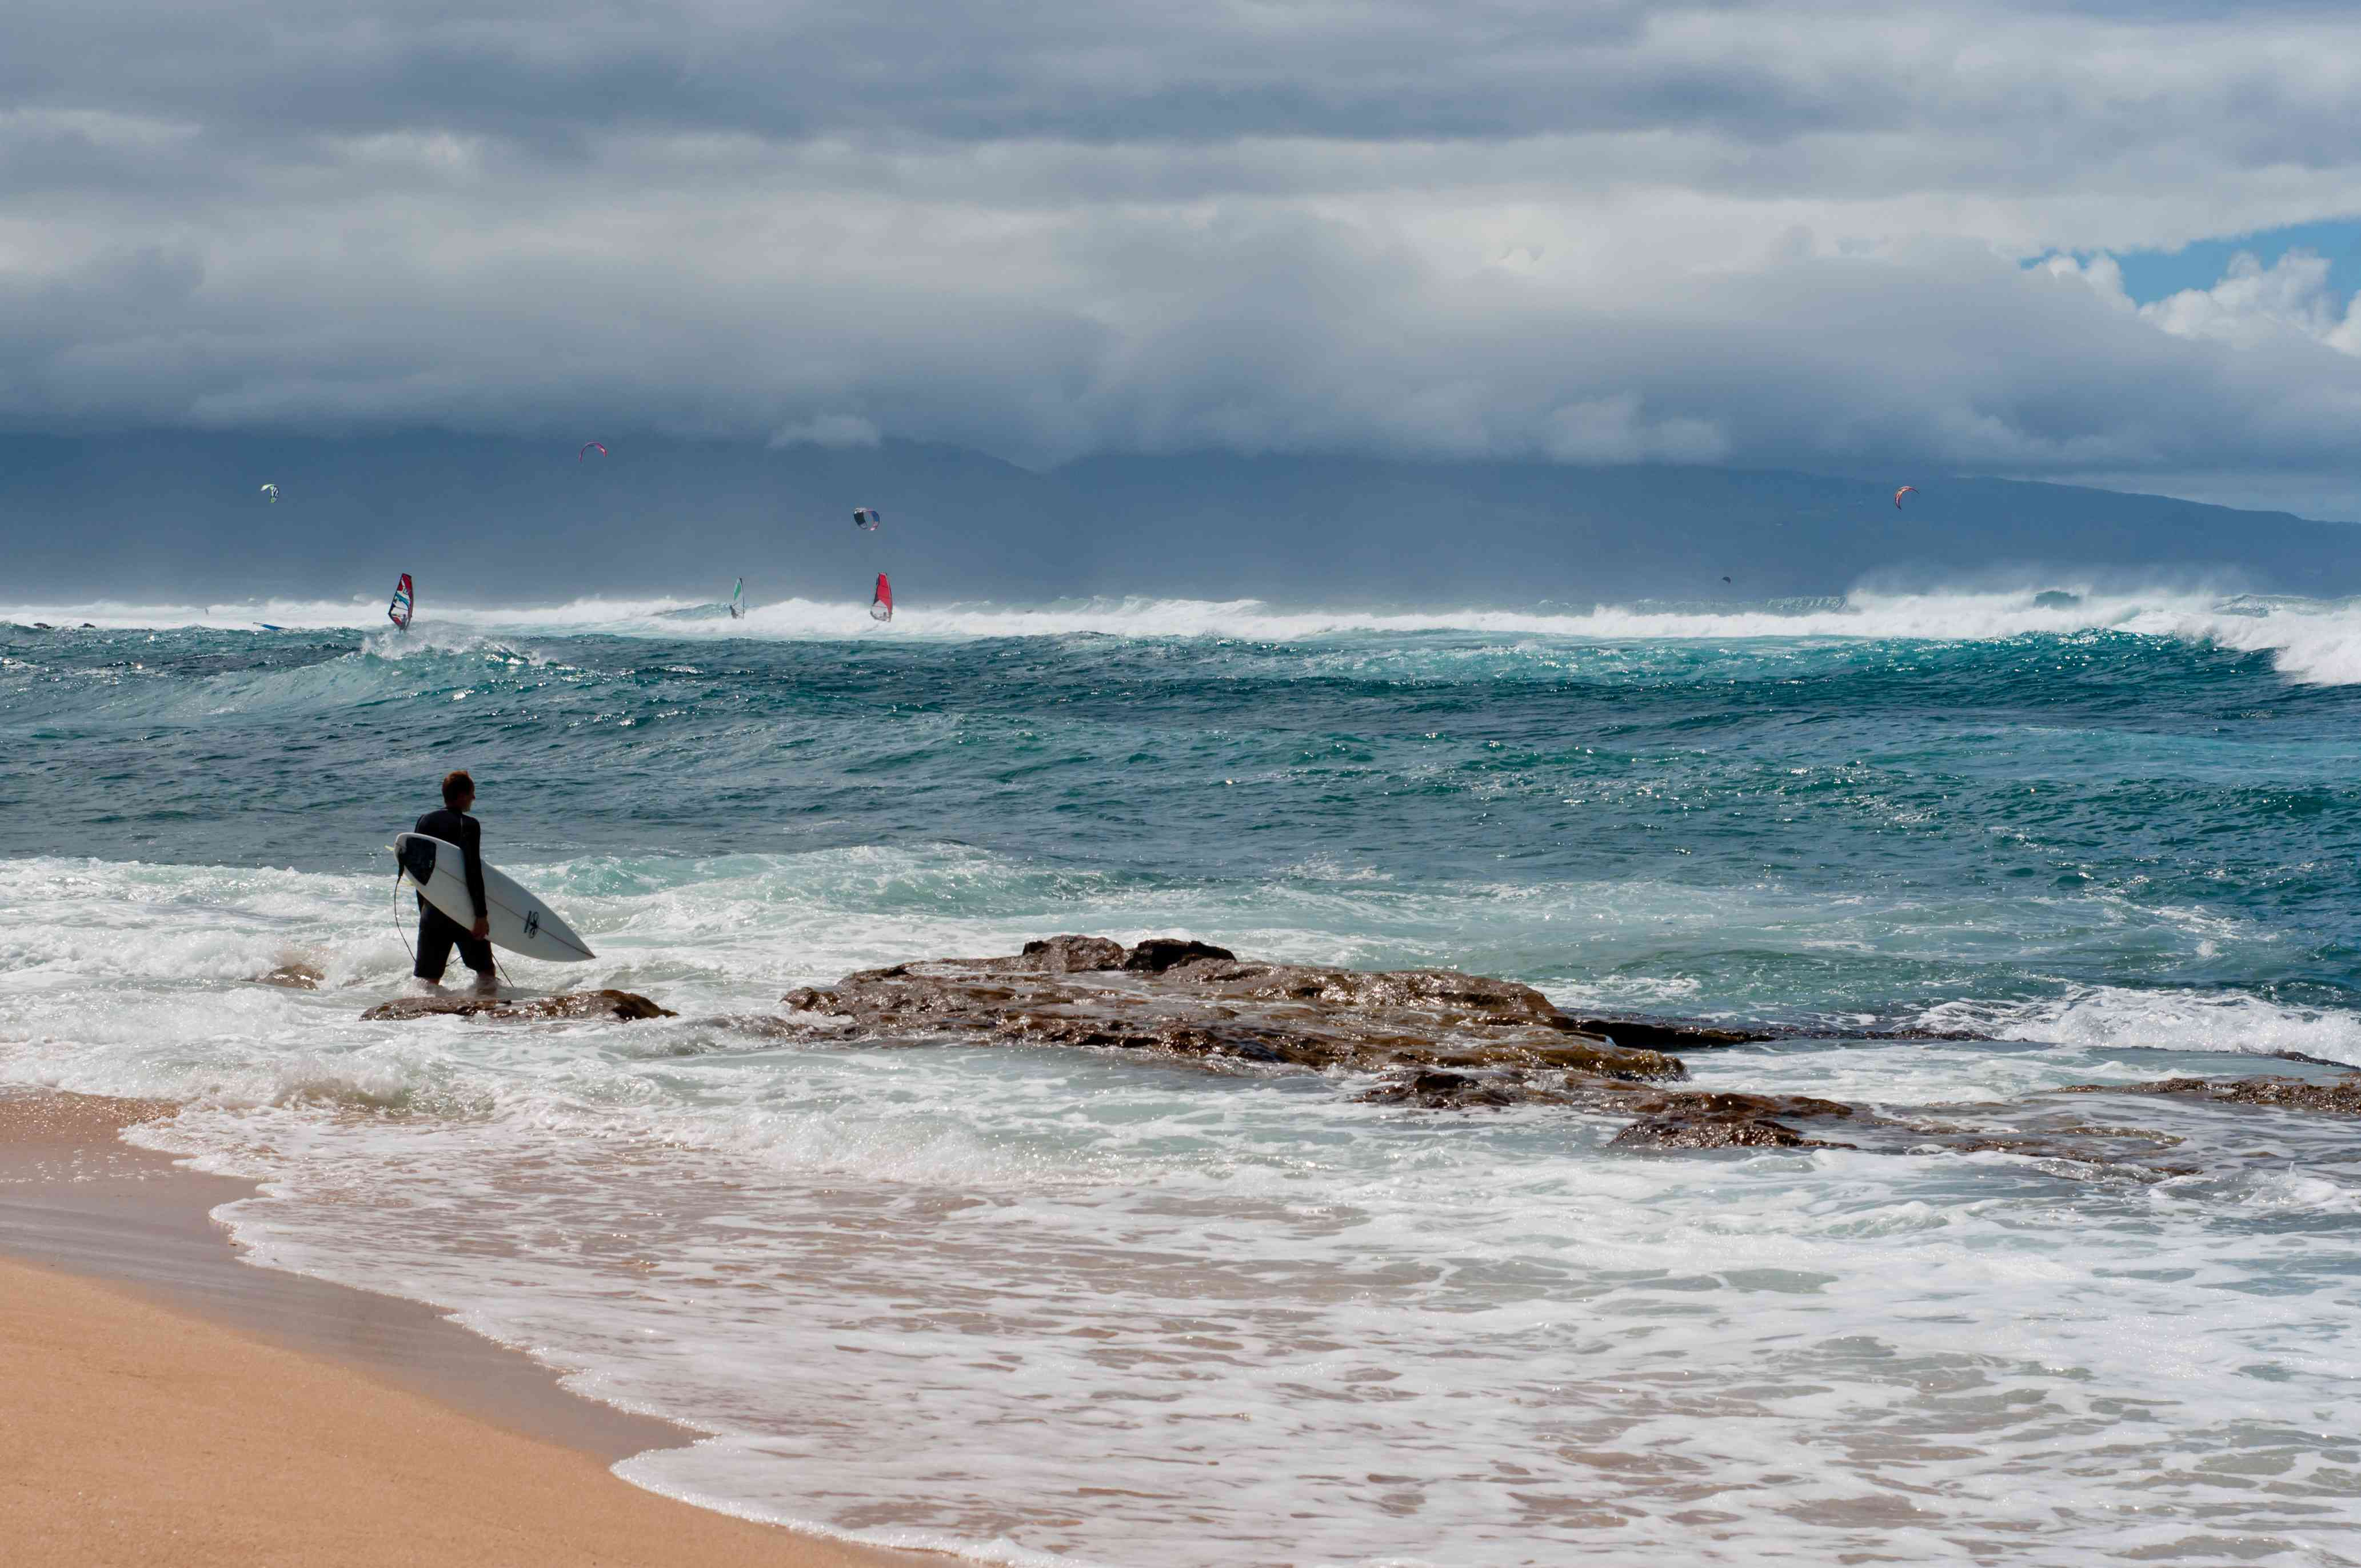 Surfer entering the ocean in Paia